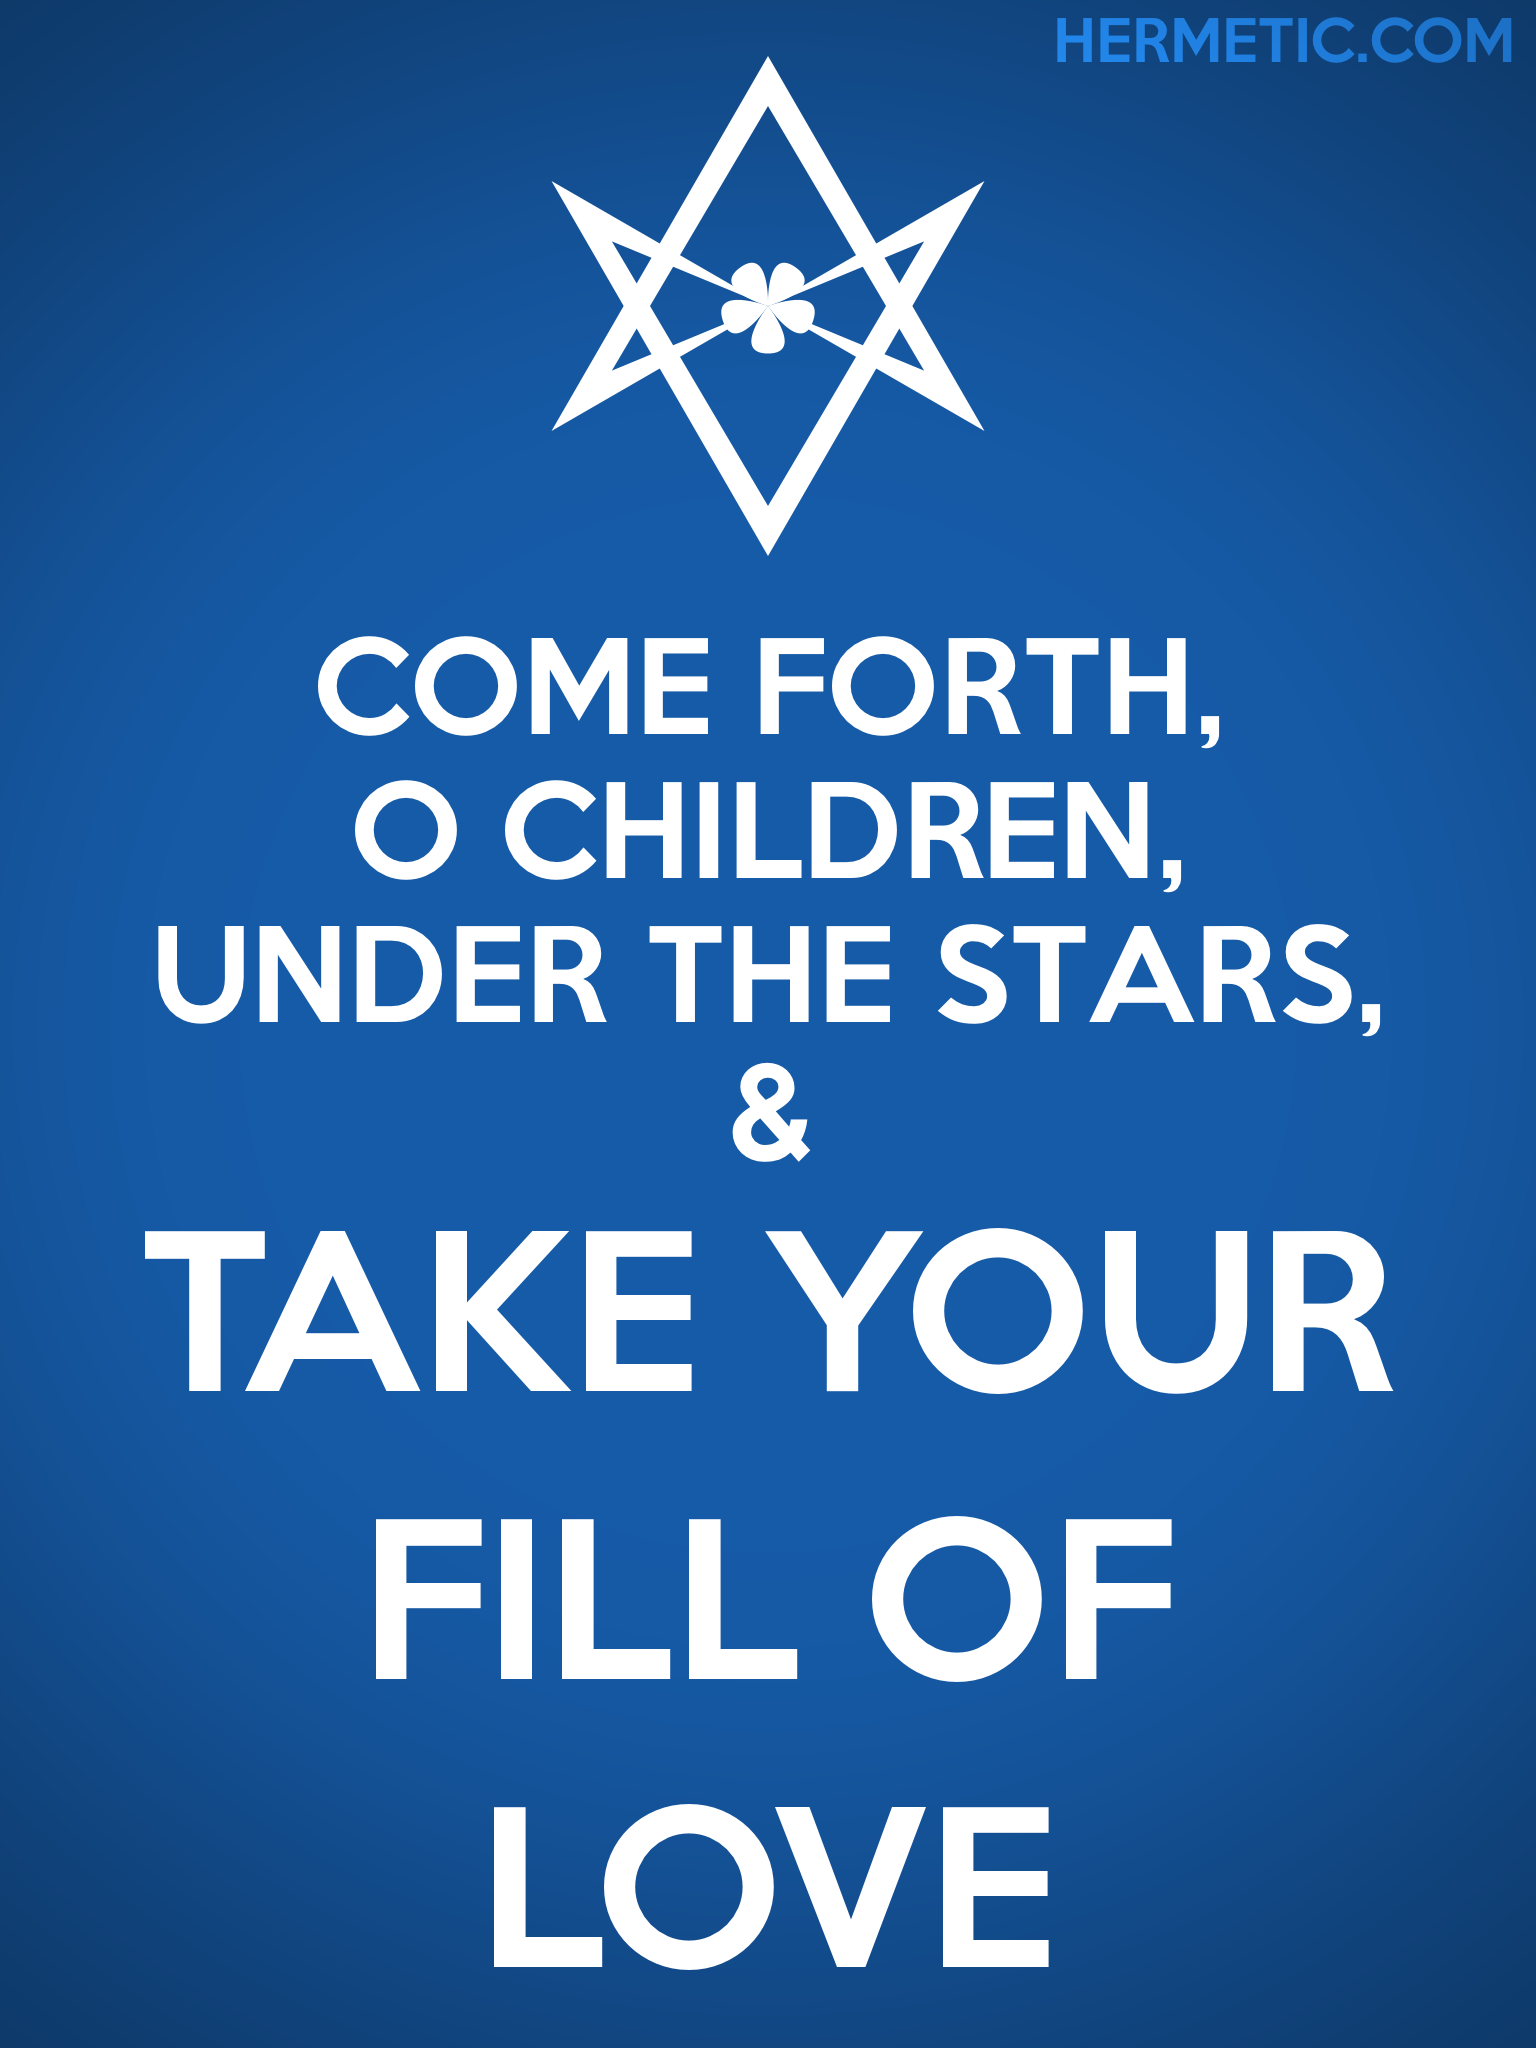 Unicursal TAKE YOUR FILL OF LOVE Propaganda Poster from Hermetic Library Office of the Ministry of Information